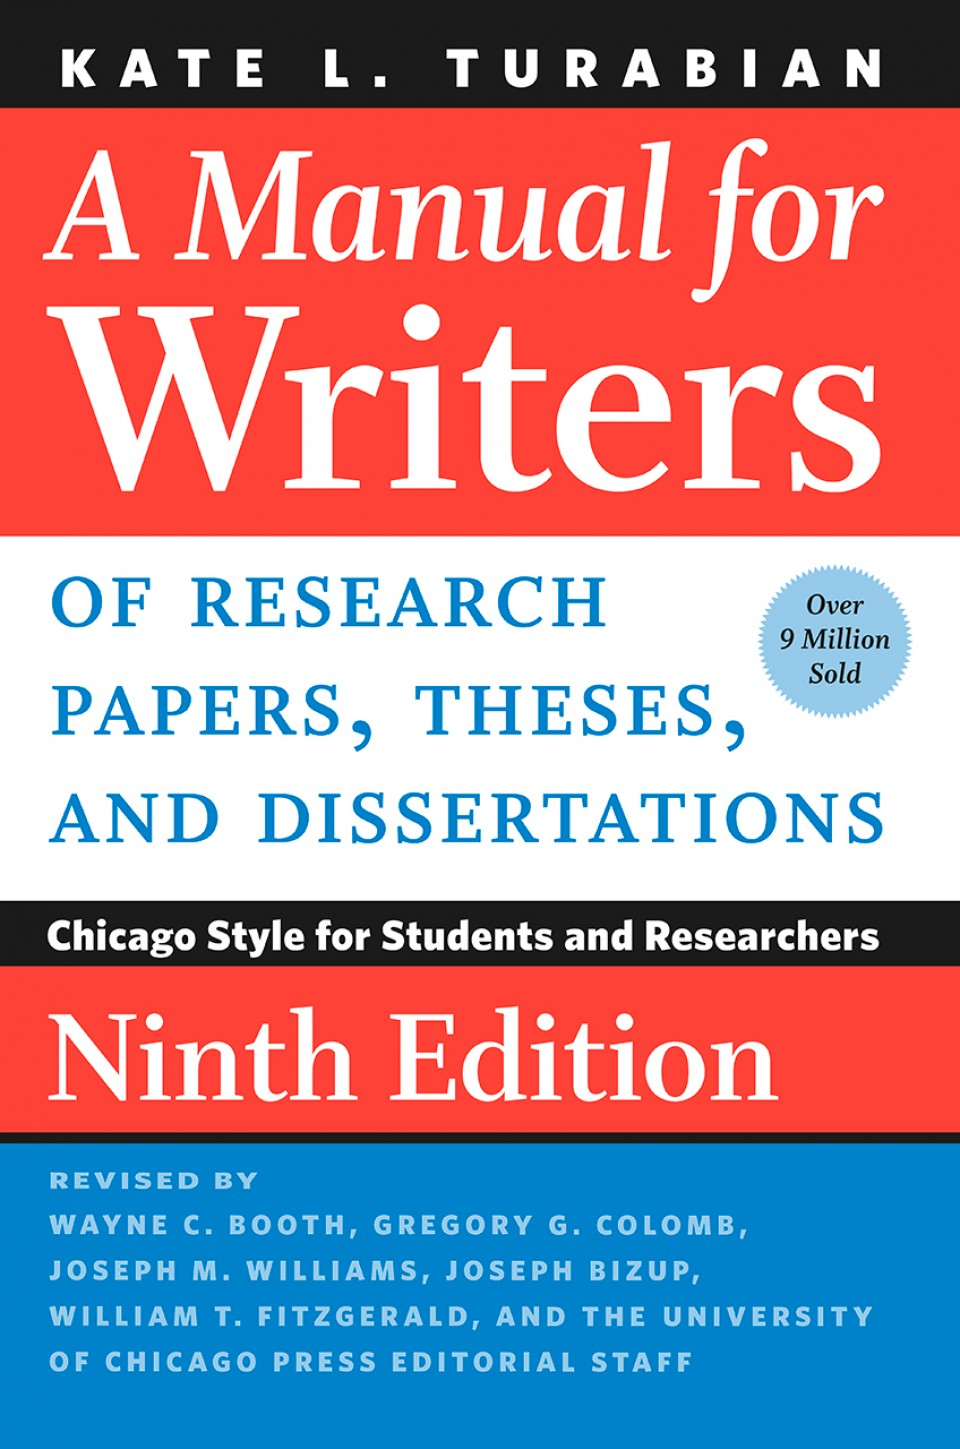 001 Manual For Writers Of Research Papers Theses And Dissertations Paper Magnificent A Amazon 9th Edition Pdf 8th 13 960